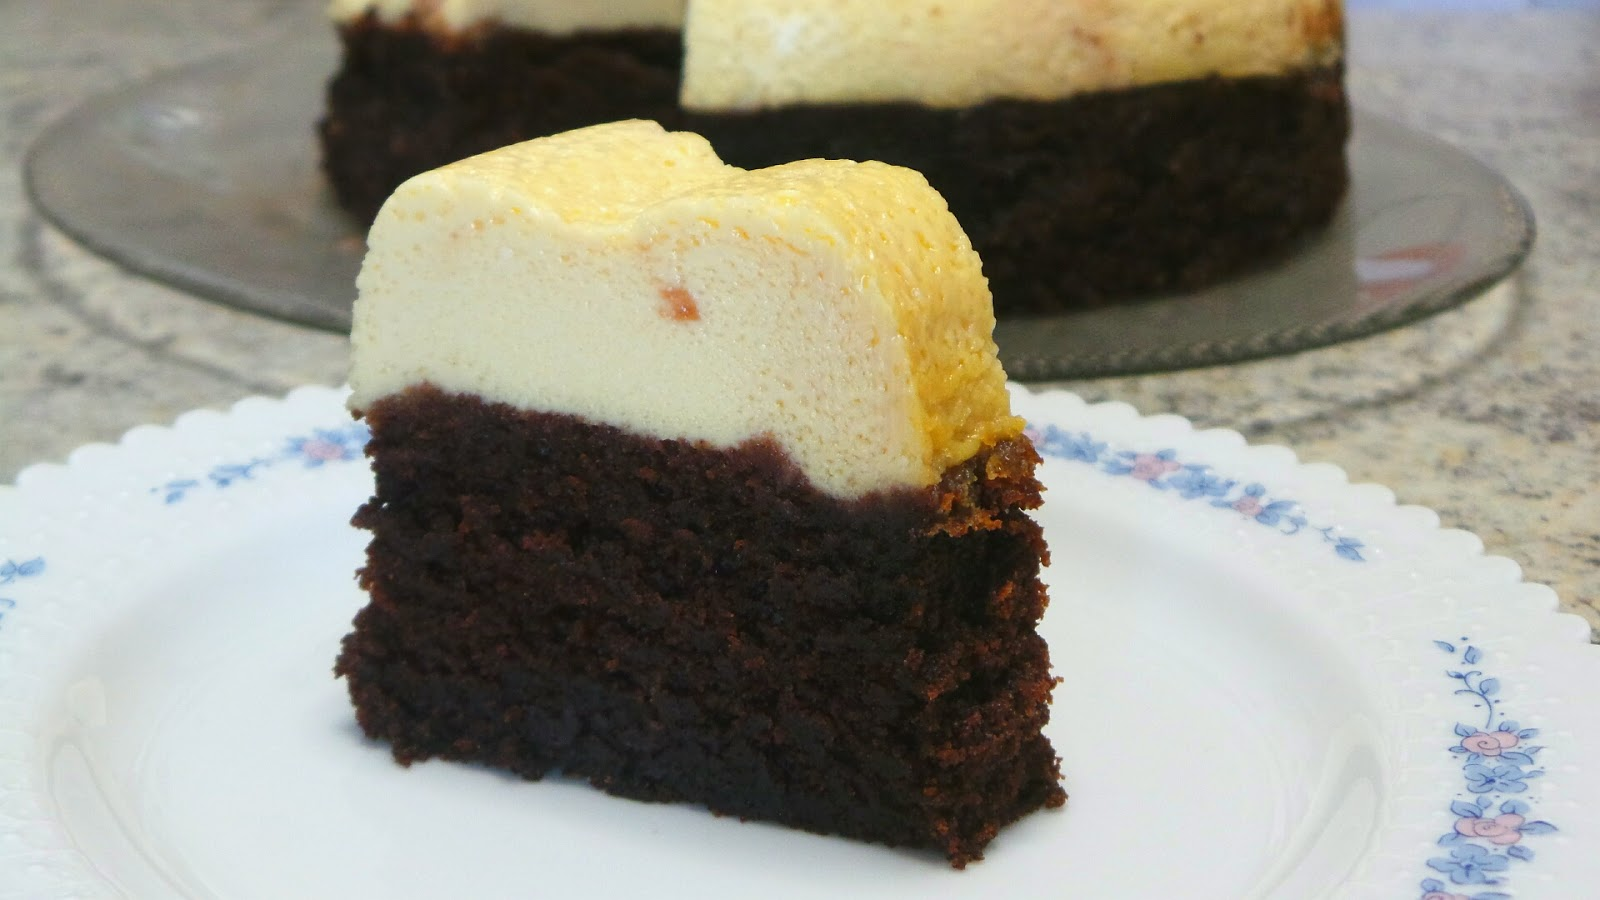 Magic Chocoflan Brownie Cheesecake Bundt Cake